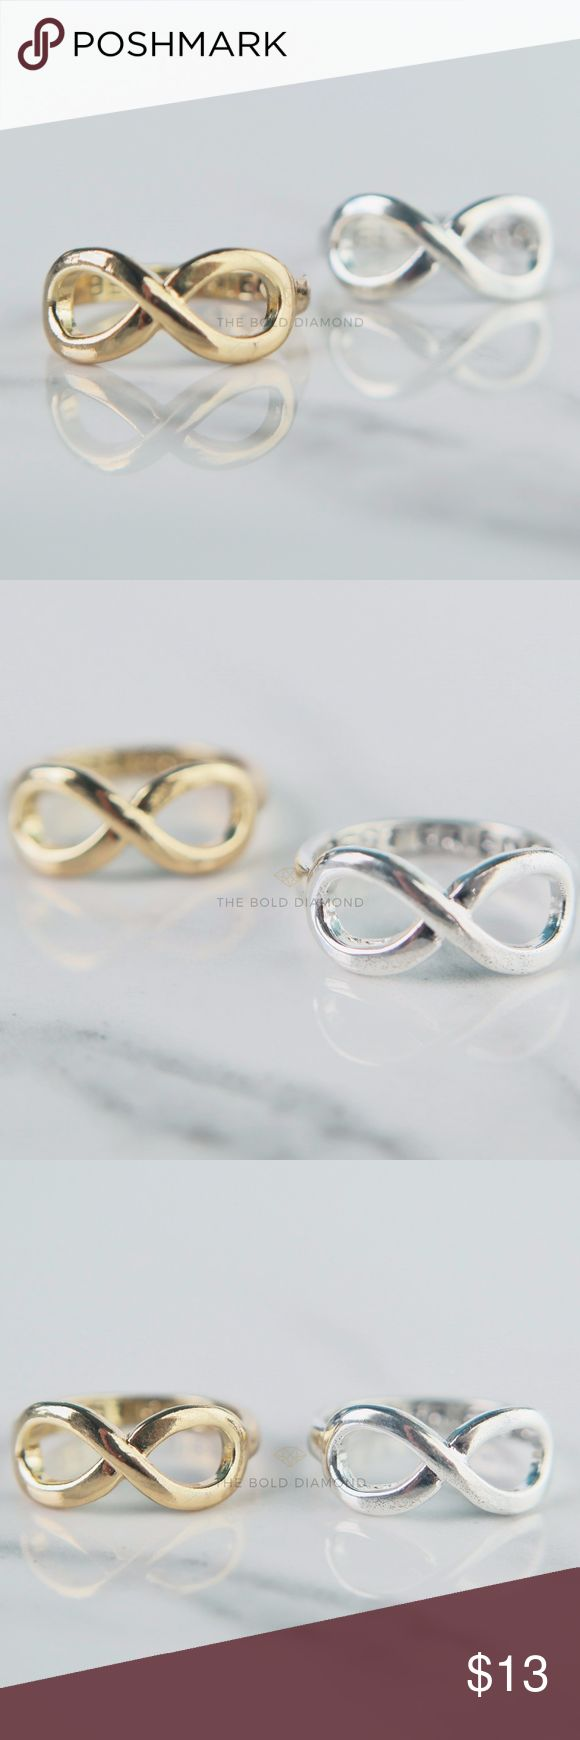 Best 25+ Best friend rings ideas on Pinterest | Friendship ...